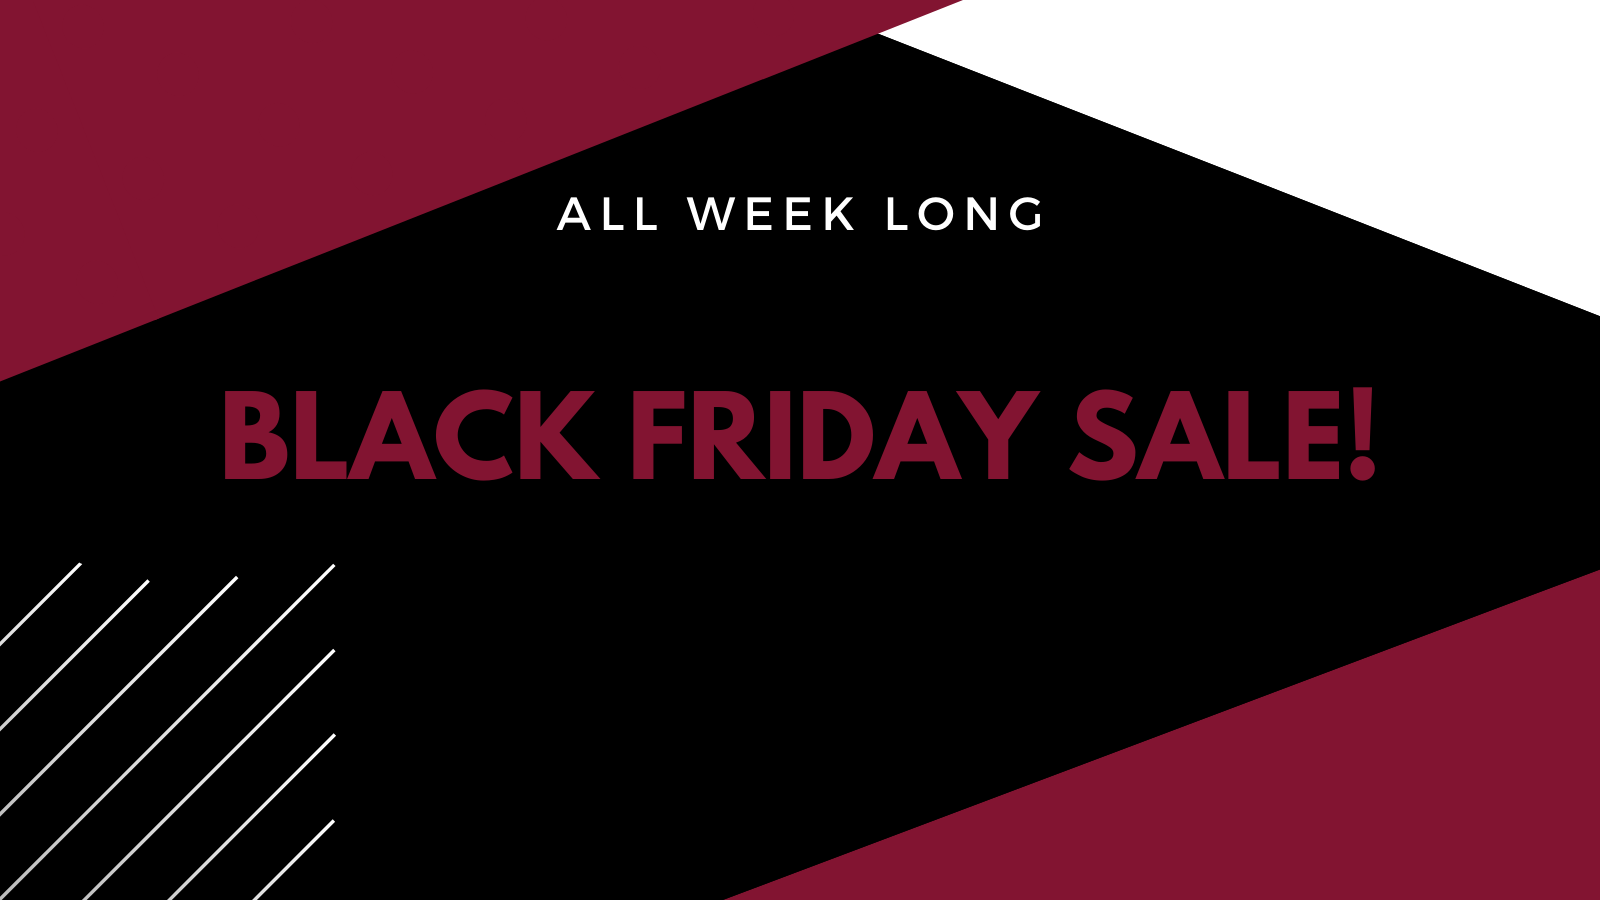 Black Friday Sale- EXTENDED